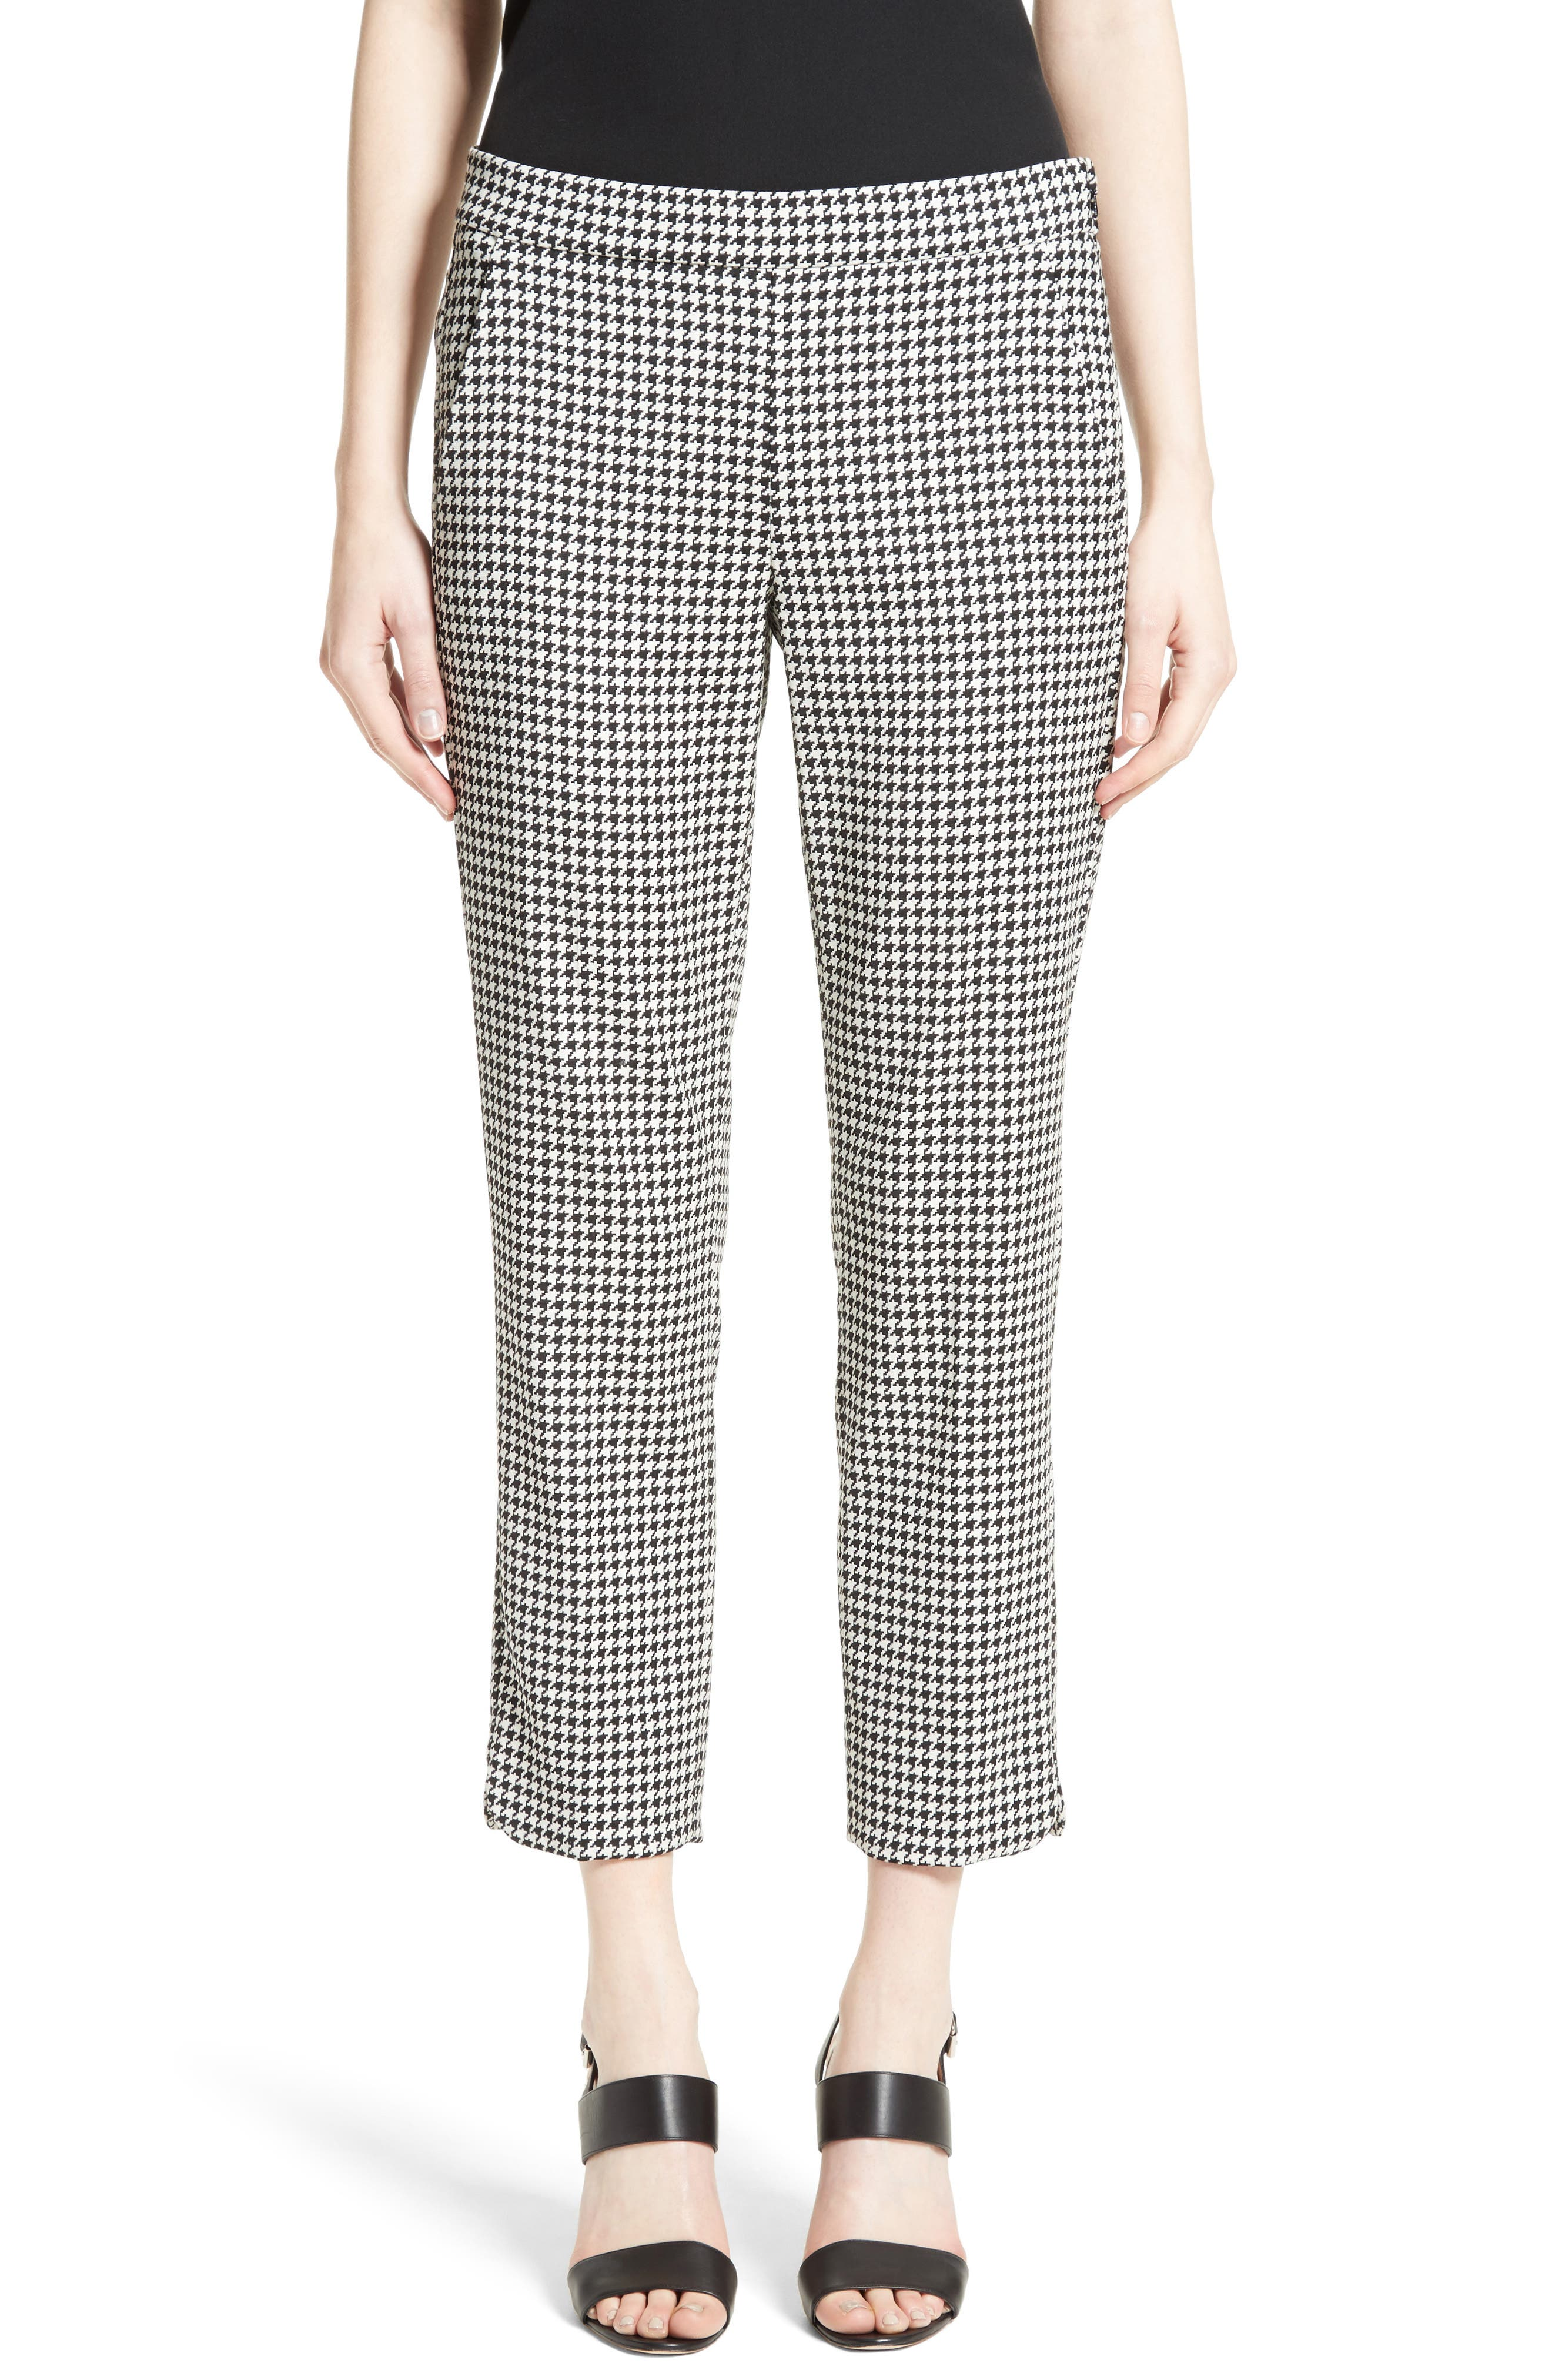 Astrale Houndstooth Wool Blend Pants,                             Main thumbnail 1, color,                             001